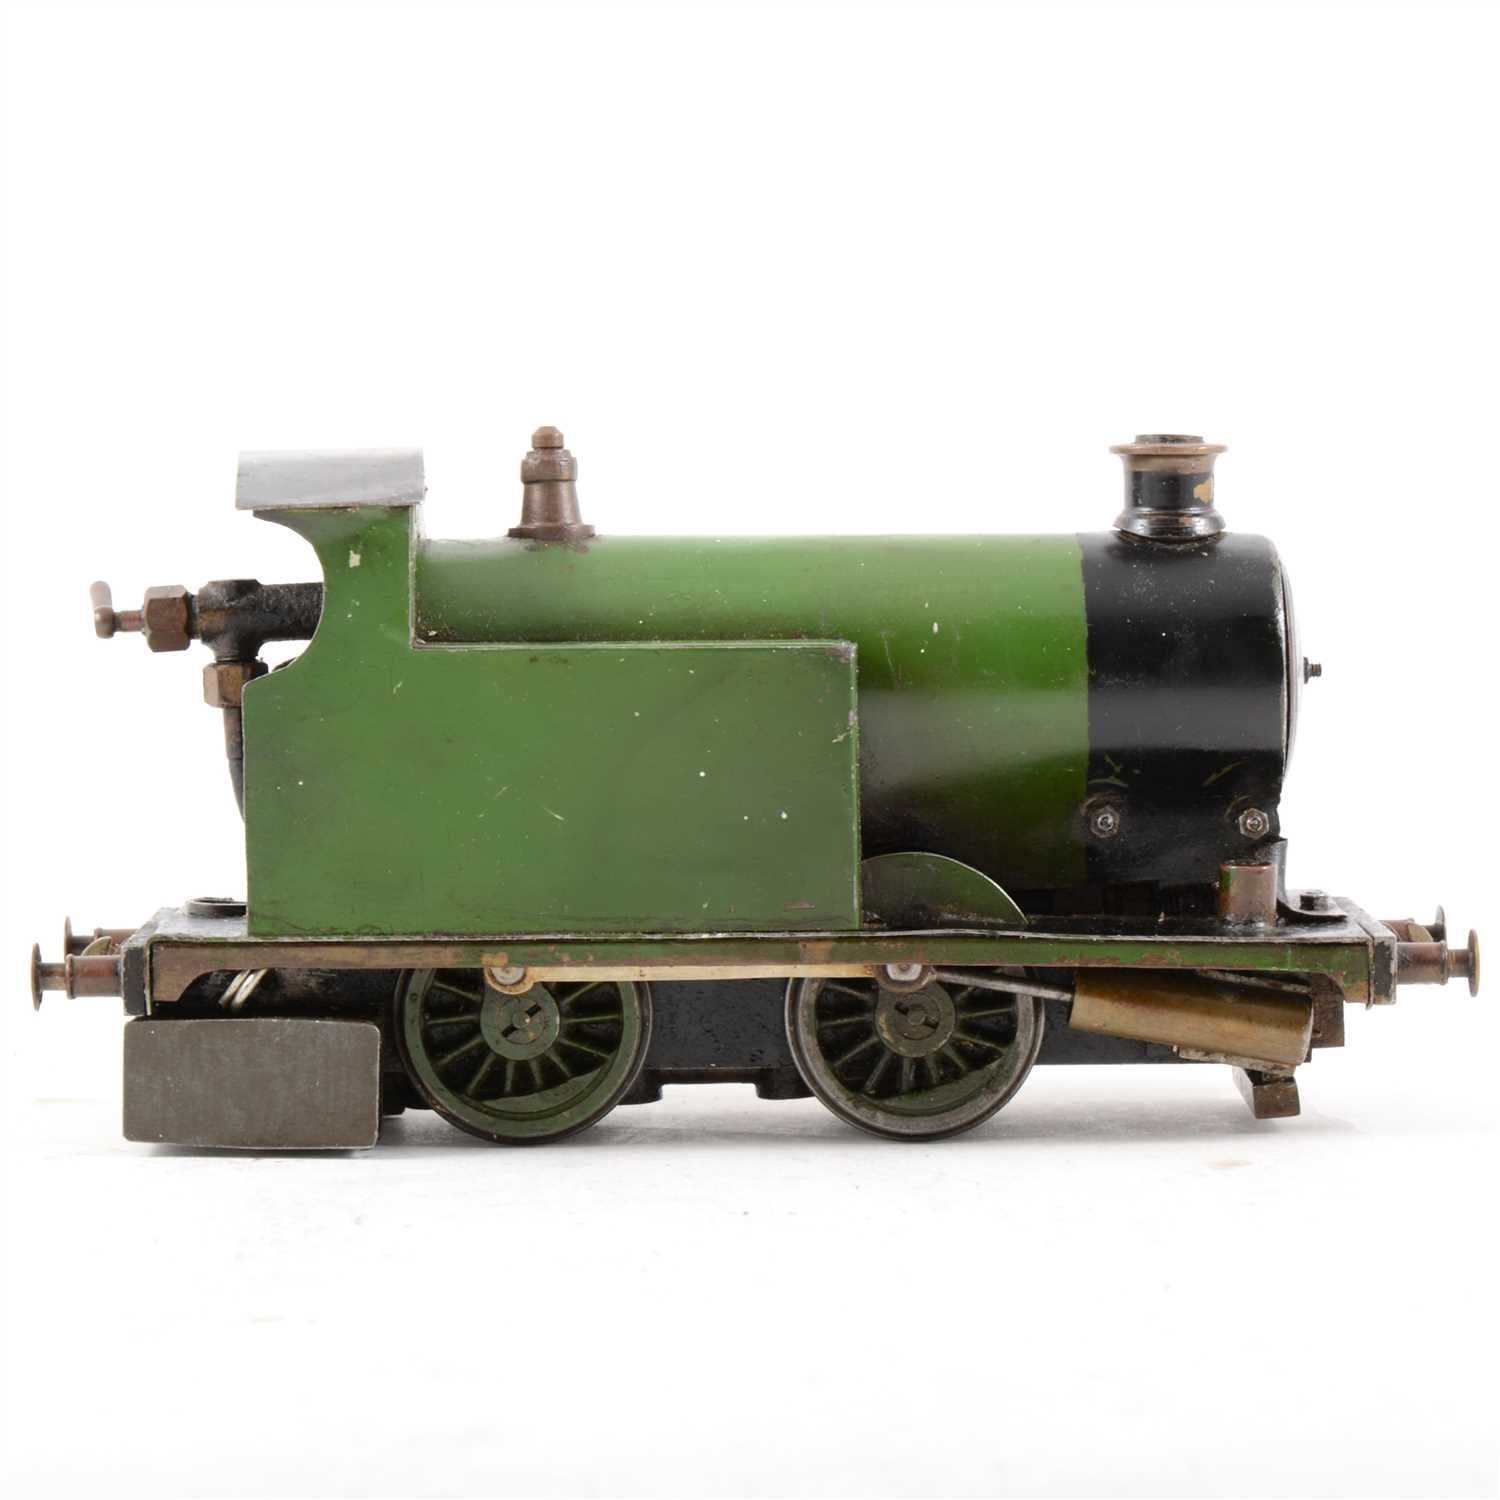 Lot 4-Scratch built tank locomotive, O gauge scale, like steam, green livery.